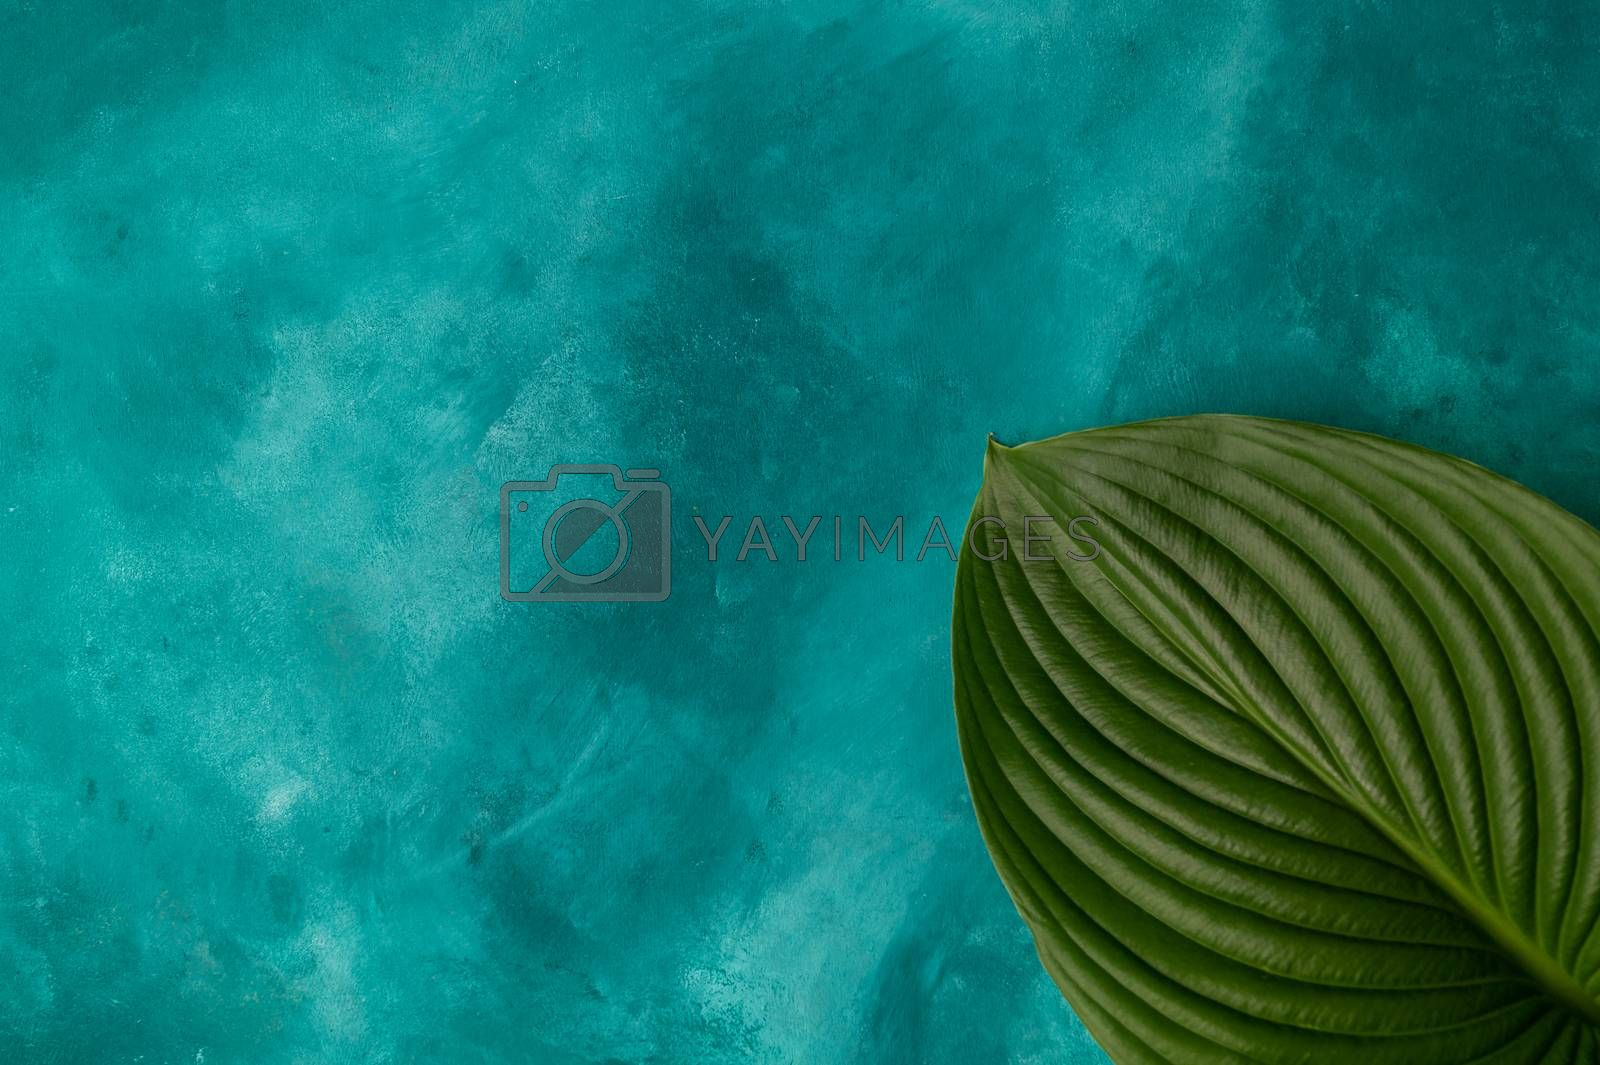 A big plant leaf on turquoise background. Leaf lies in right down corner. Good for mockup, template, for any object and edit.